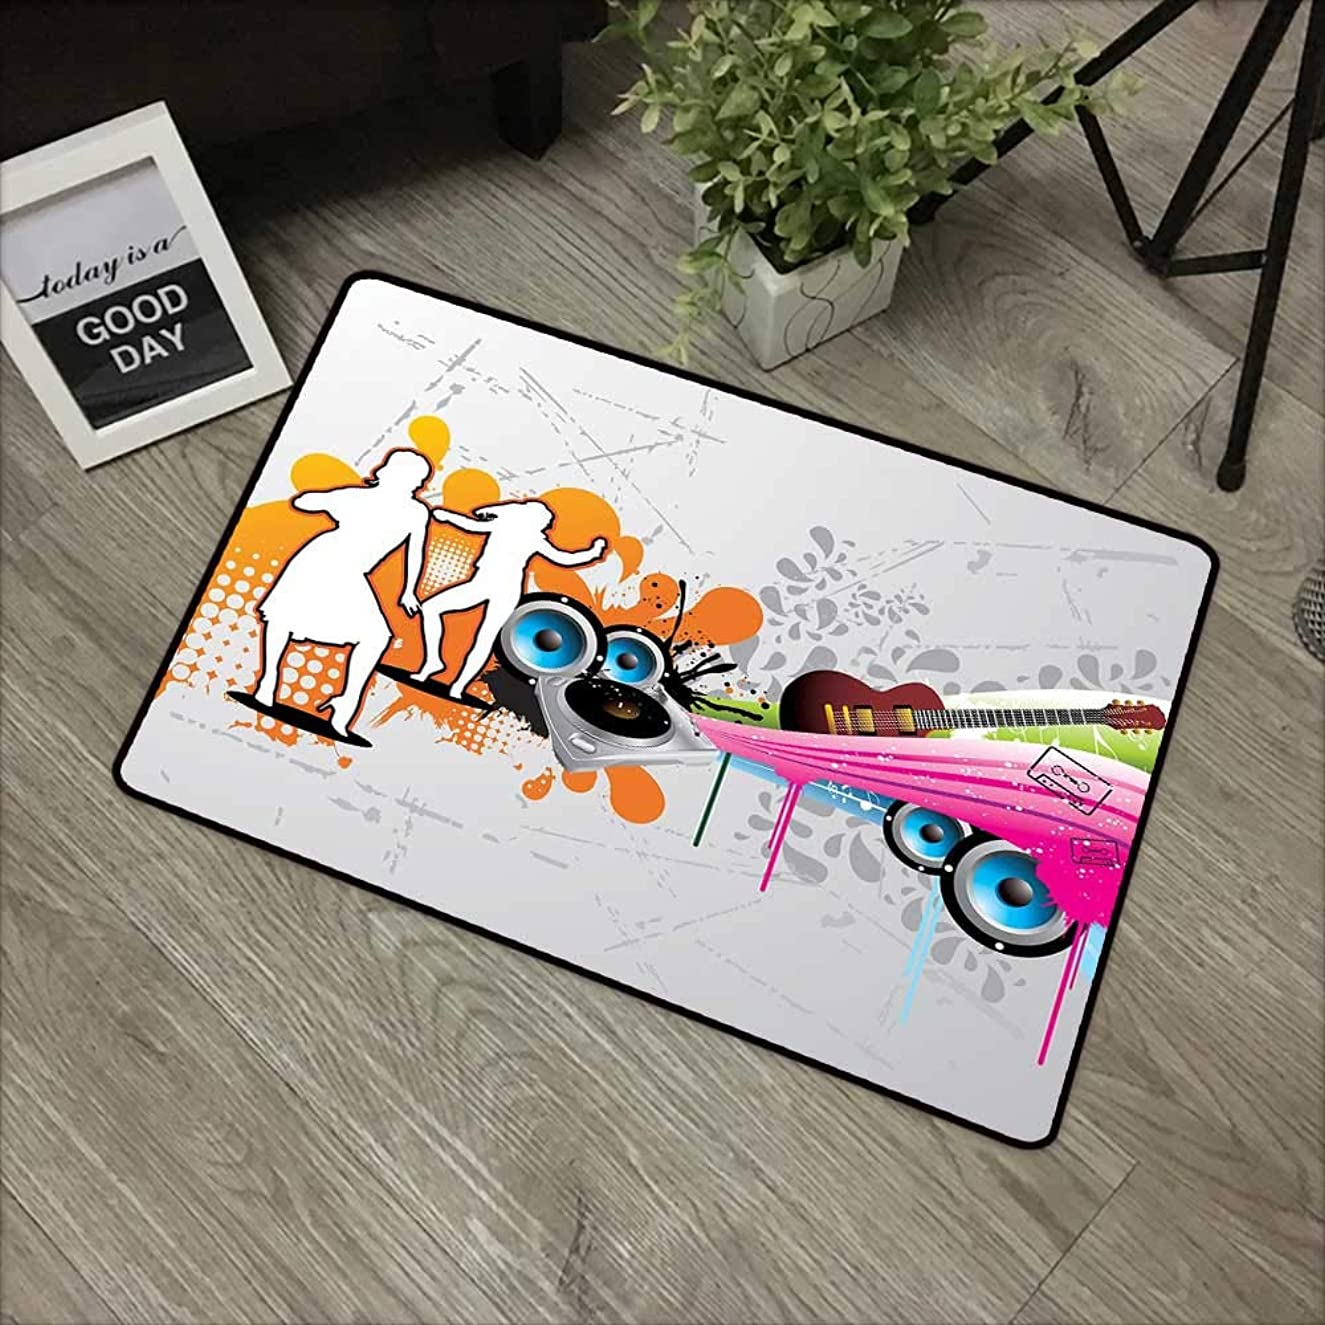 Bathroom Door mat W35 x L59 INCH Grunge,Music People with Turntable and Speakers Dancing Funky Urban Nights Guitar Print,Multicolor Non-Slip, with Non-Slip Backing,Non-Slip Door Mat Carpet